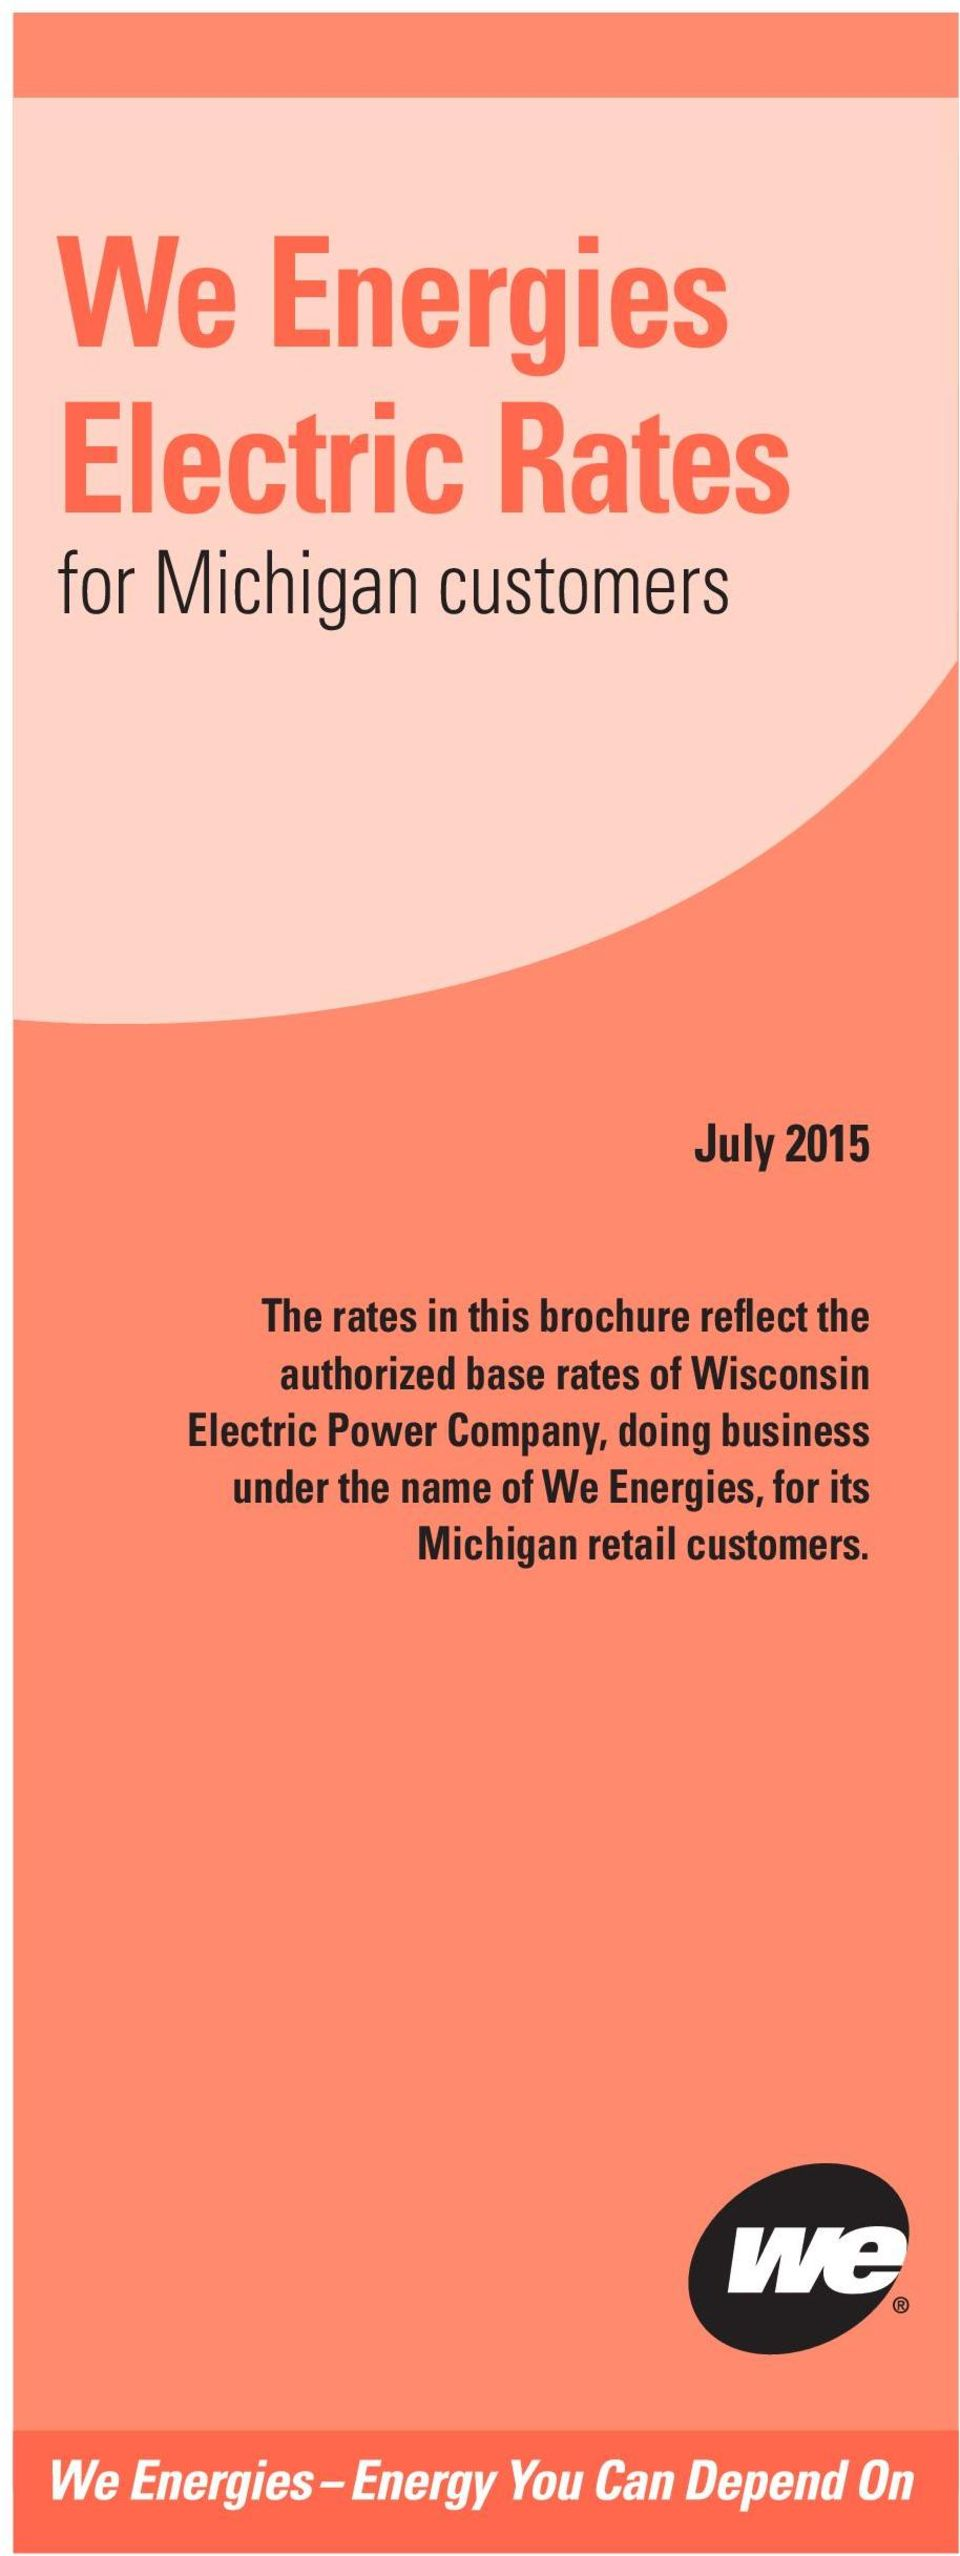 rates of Wisconsin Electric Power Company, doing business